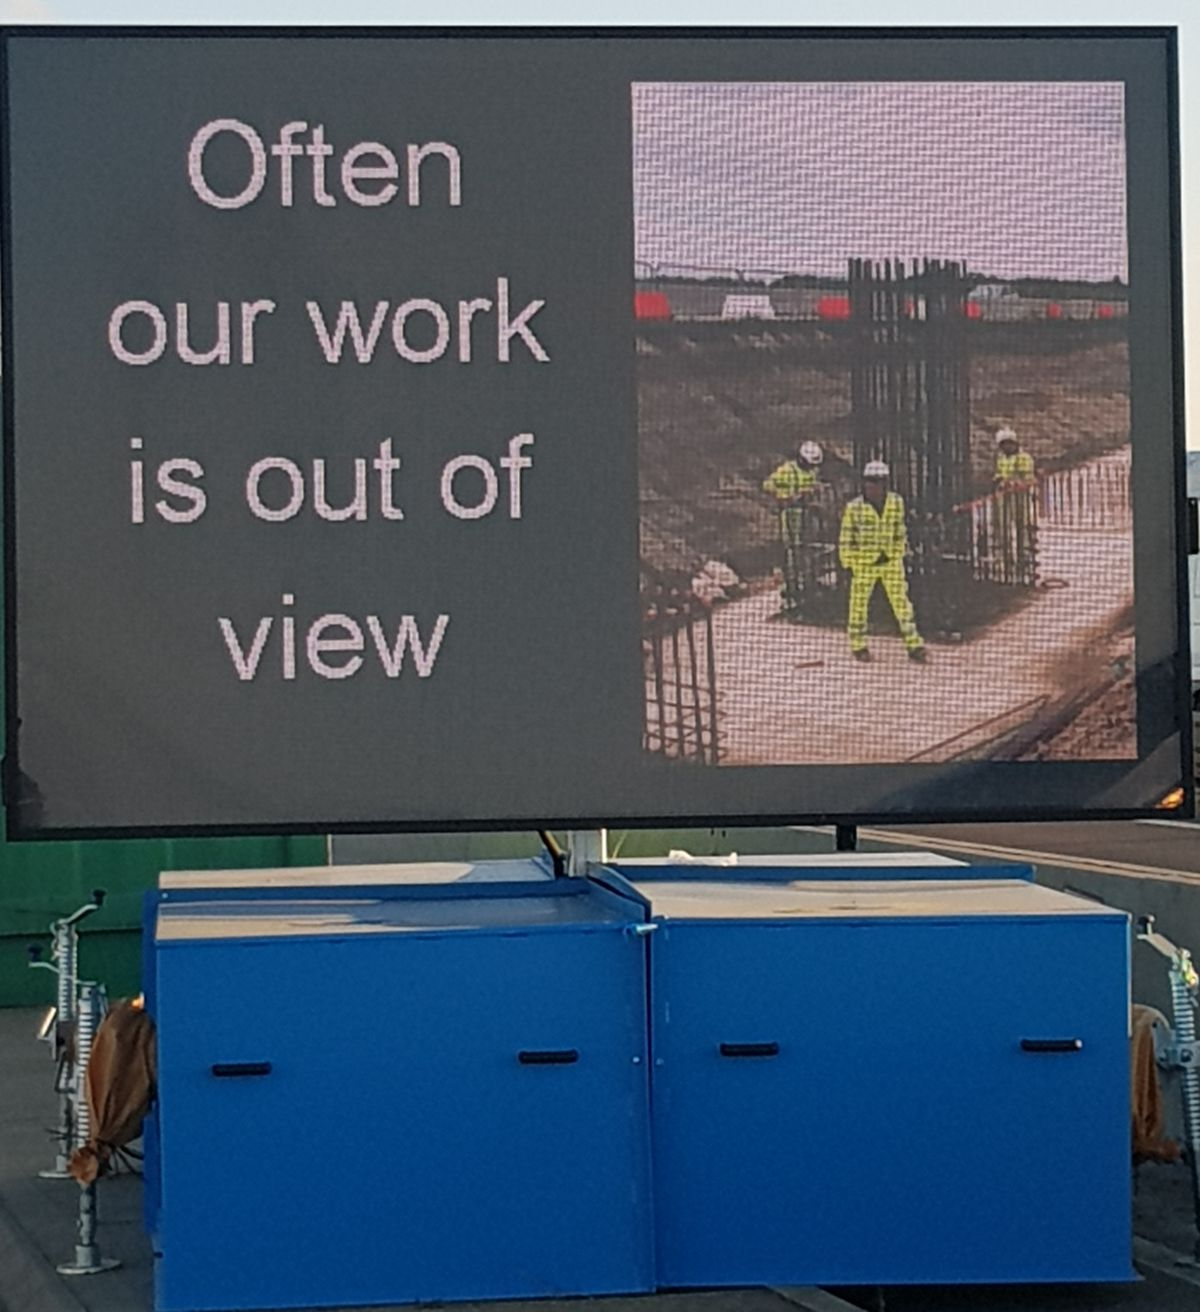 Bartco UK to introduce friendly and energy efficient ITS billboard at Traffex